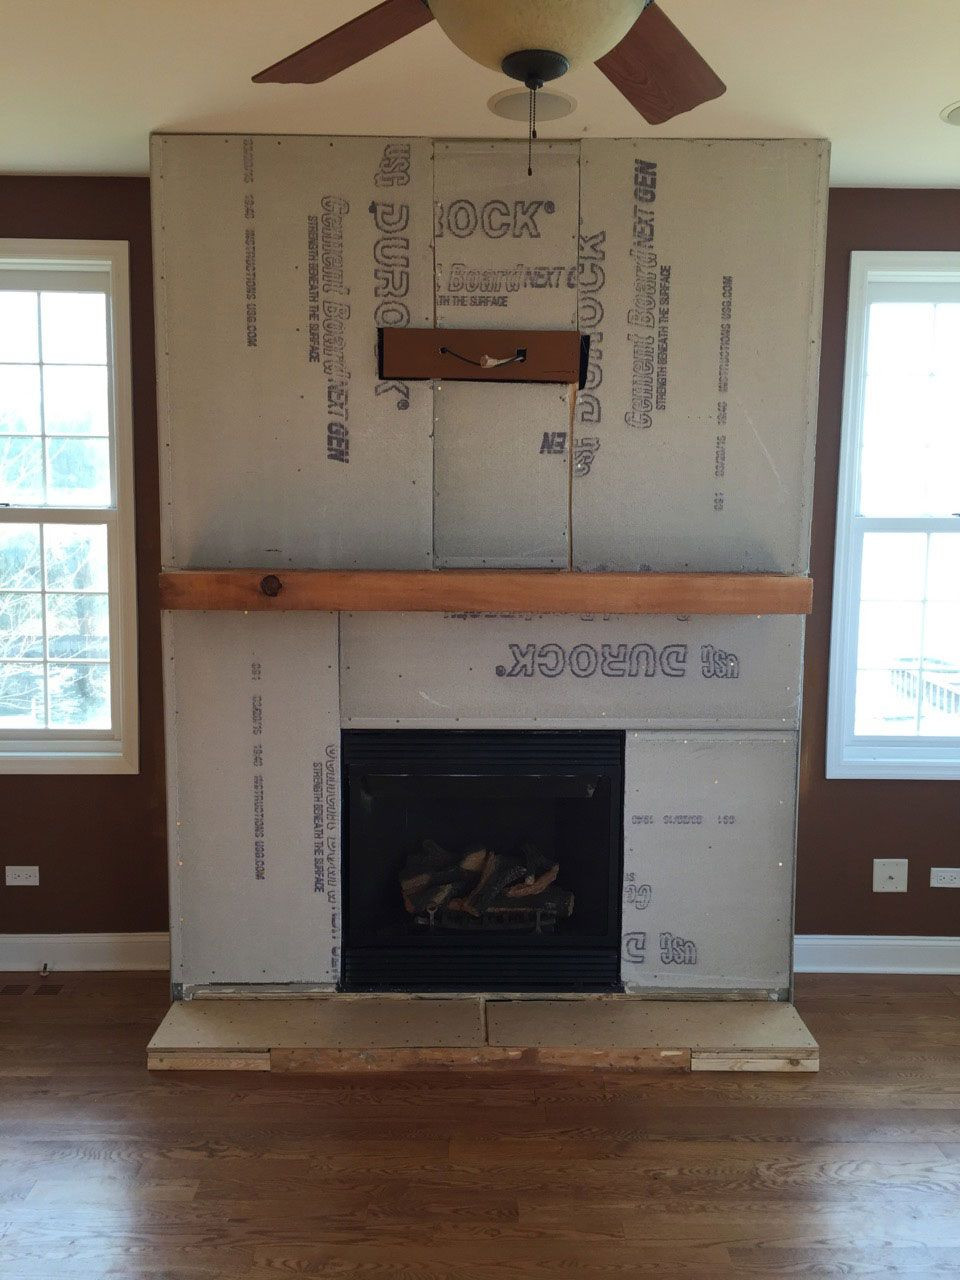 How to Install Hardwood Floor Near Wall Of A Diy Stone Veneer Installation Step by Step Fireplace Regarding A Step by Step Diy Stone Veneer Installation On A Fireplace In Only 4 Days